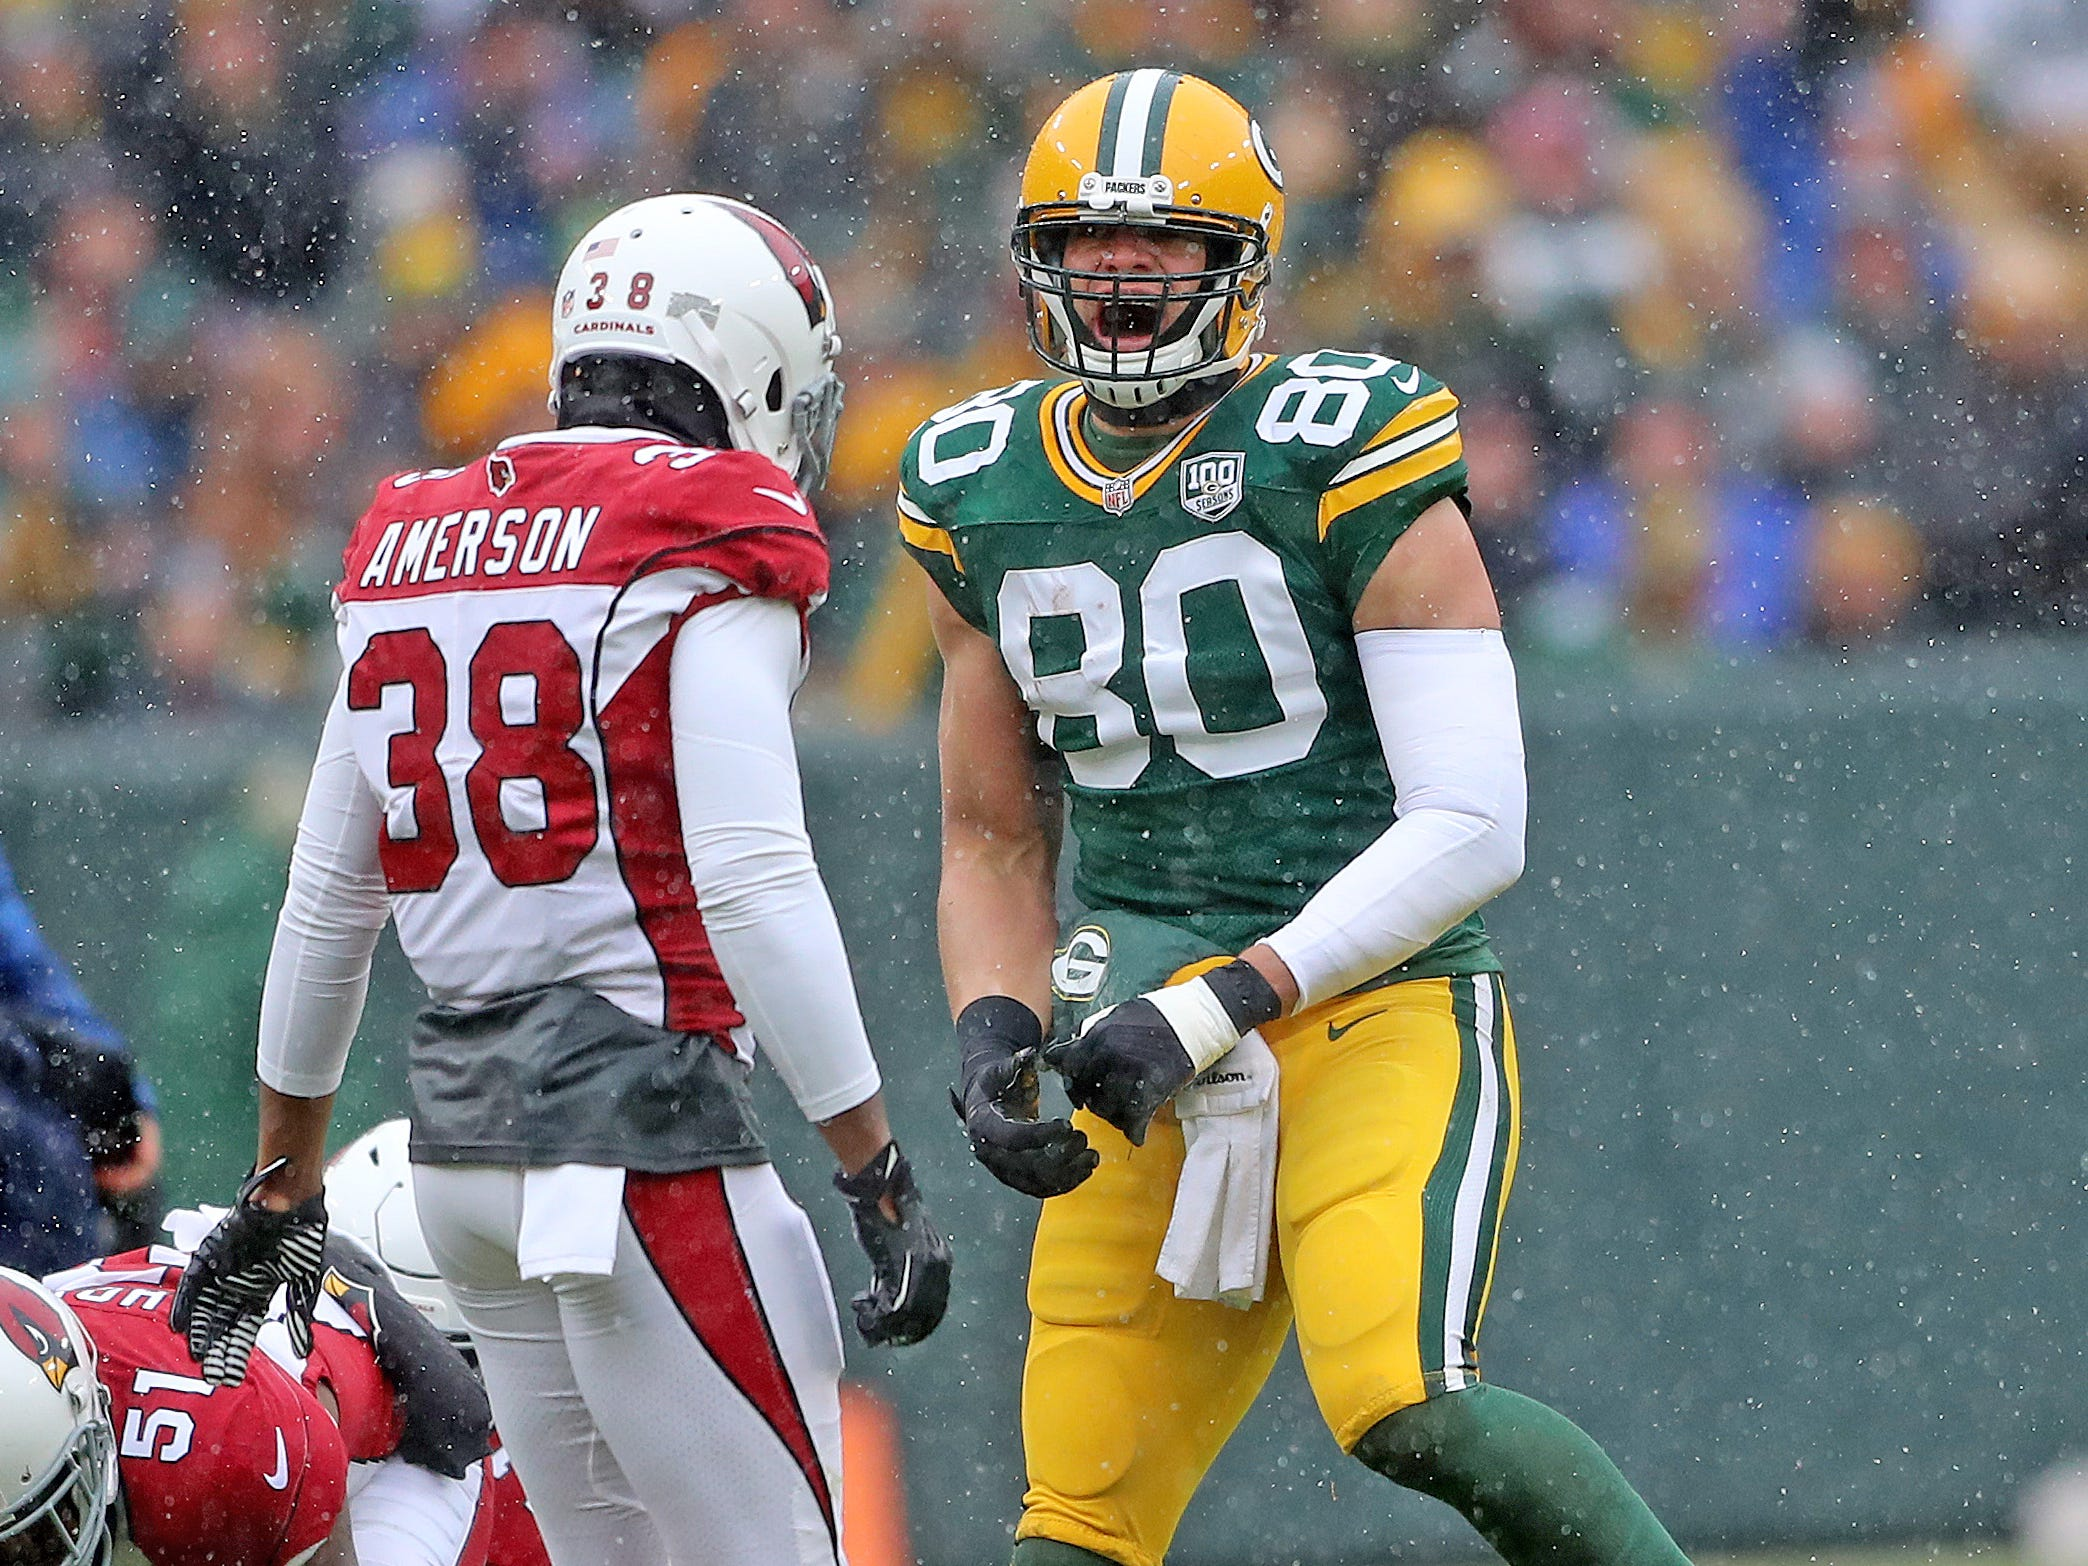 Green Bay Packers tight end Jimmy Graham (80) shouts after a catch and run against the Arizona Cardinals Sunday, December 2, 2018 at Lambeau Field in Green Bay, Wis. Jim Matthews/USA TODAY NETWORK-Wis